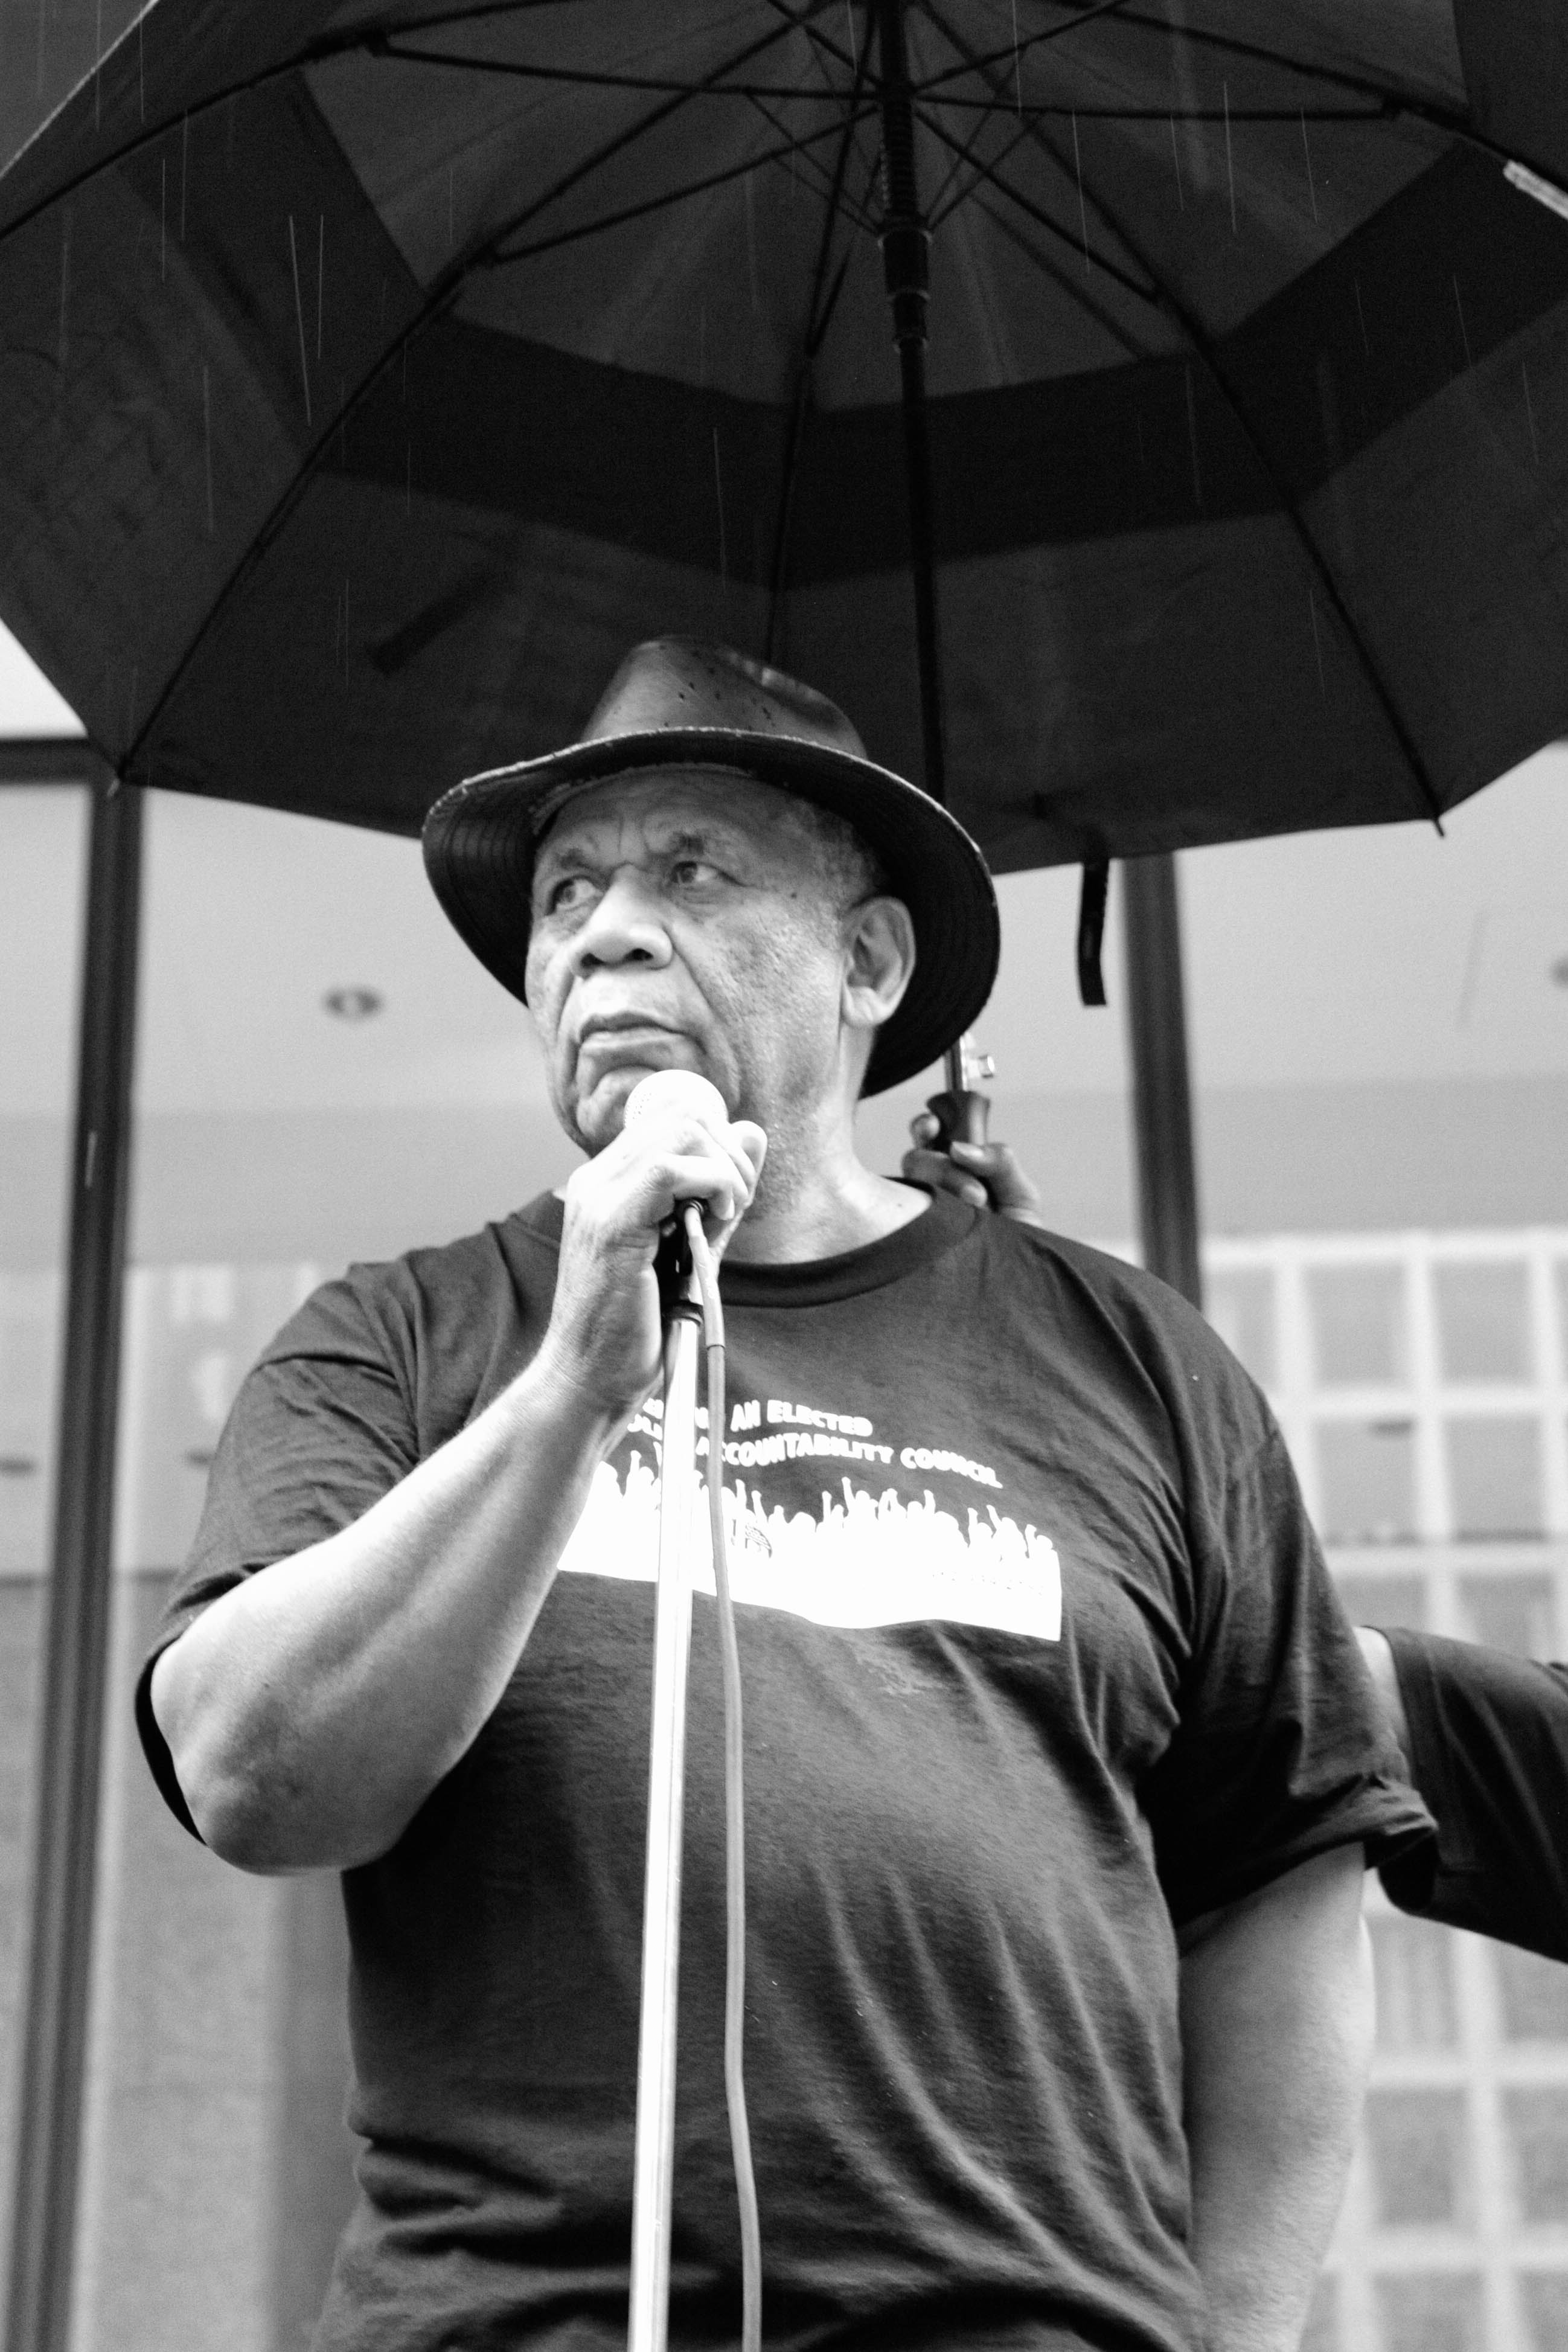 CHICAGO, IL. Aug. 29, 2015 - Frank Chapman, field organizer for the Chicago Alliance Against Racist and Political Repression, speaks to demonstrators in Chicago's Daley Plaza during a rally to end police violence.